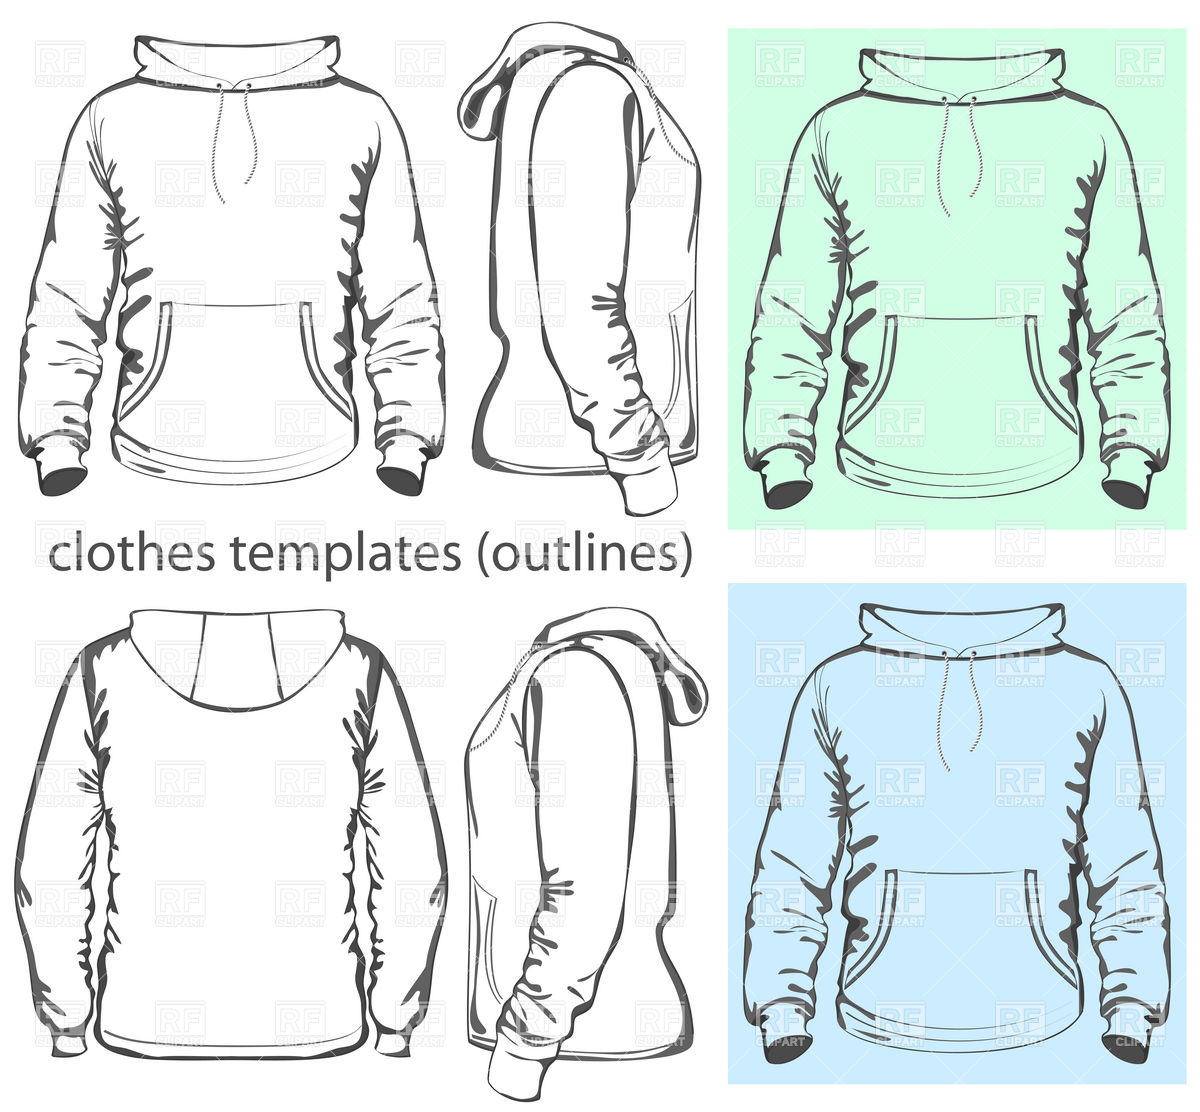 12 Hooded Sweatshirt Template Images